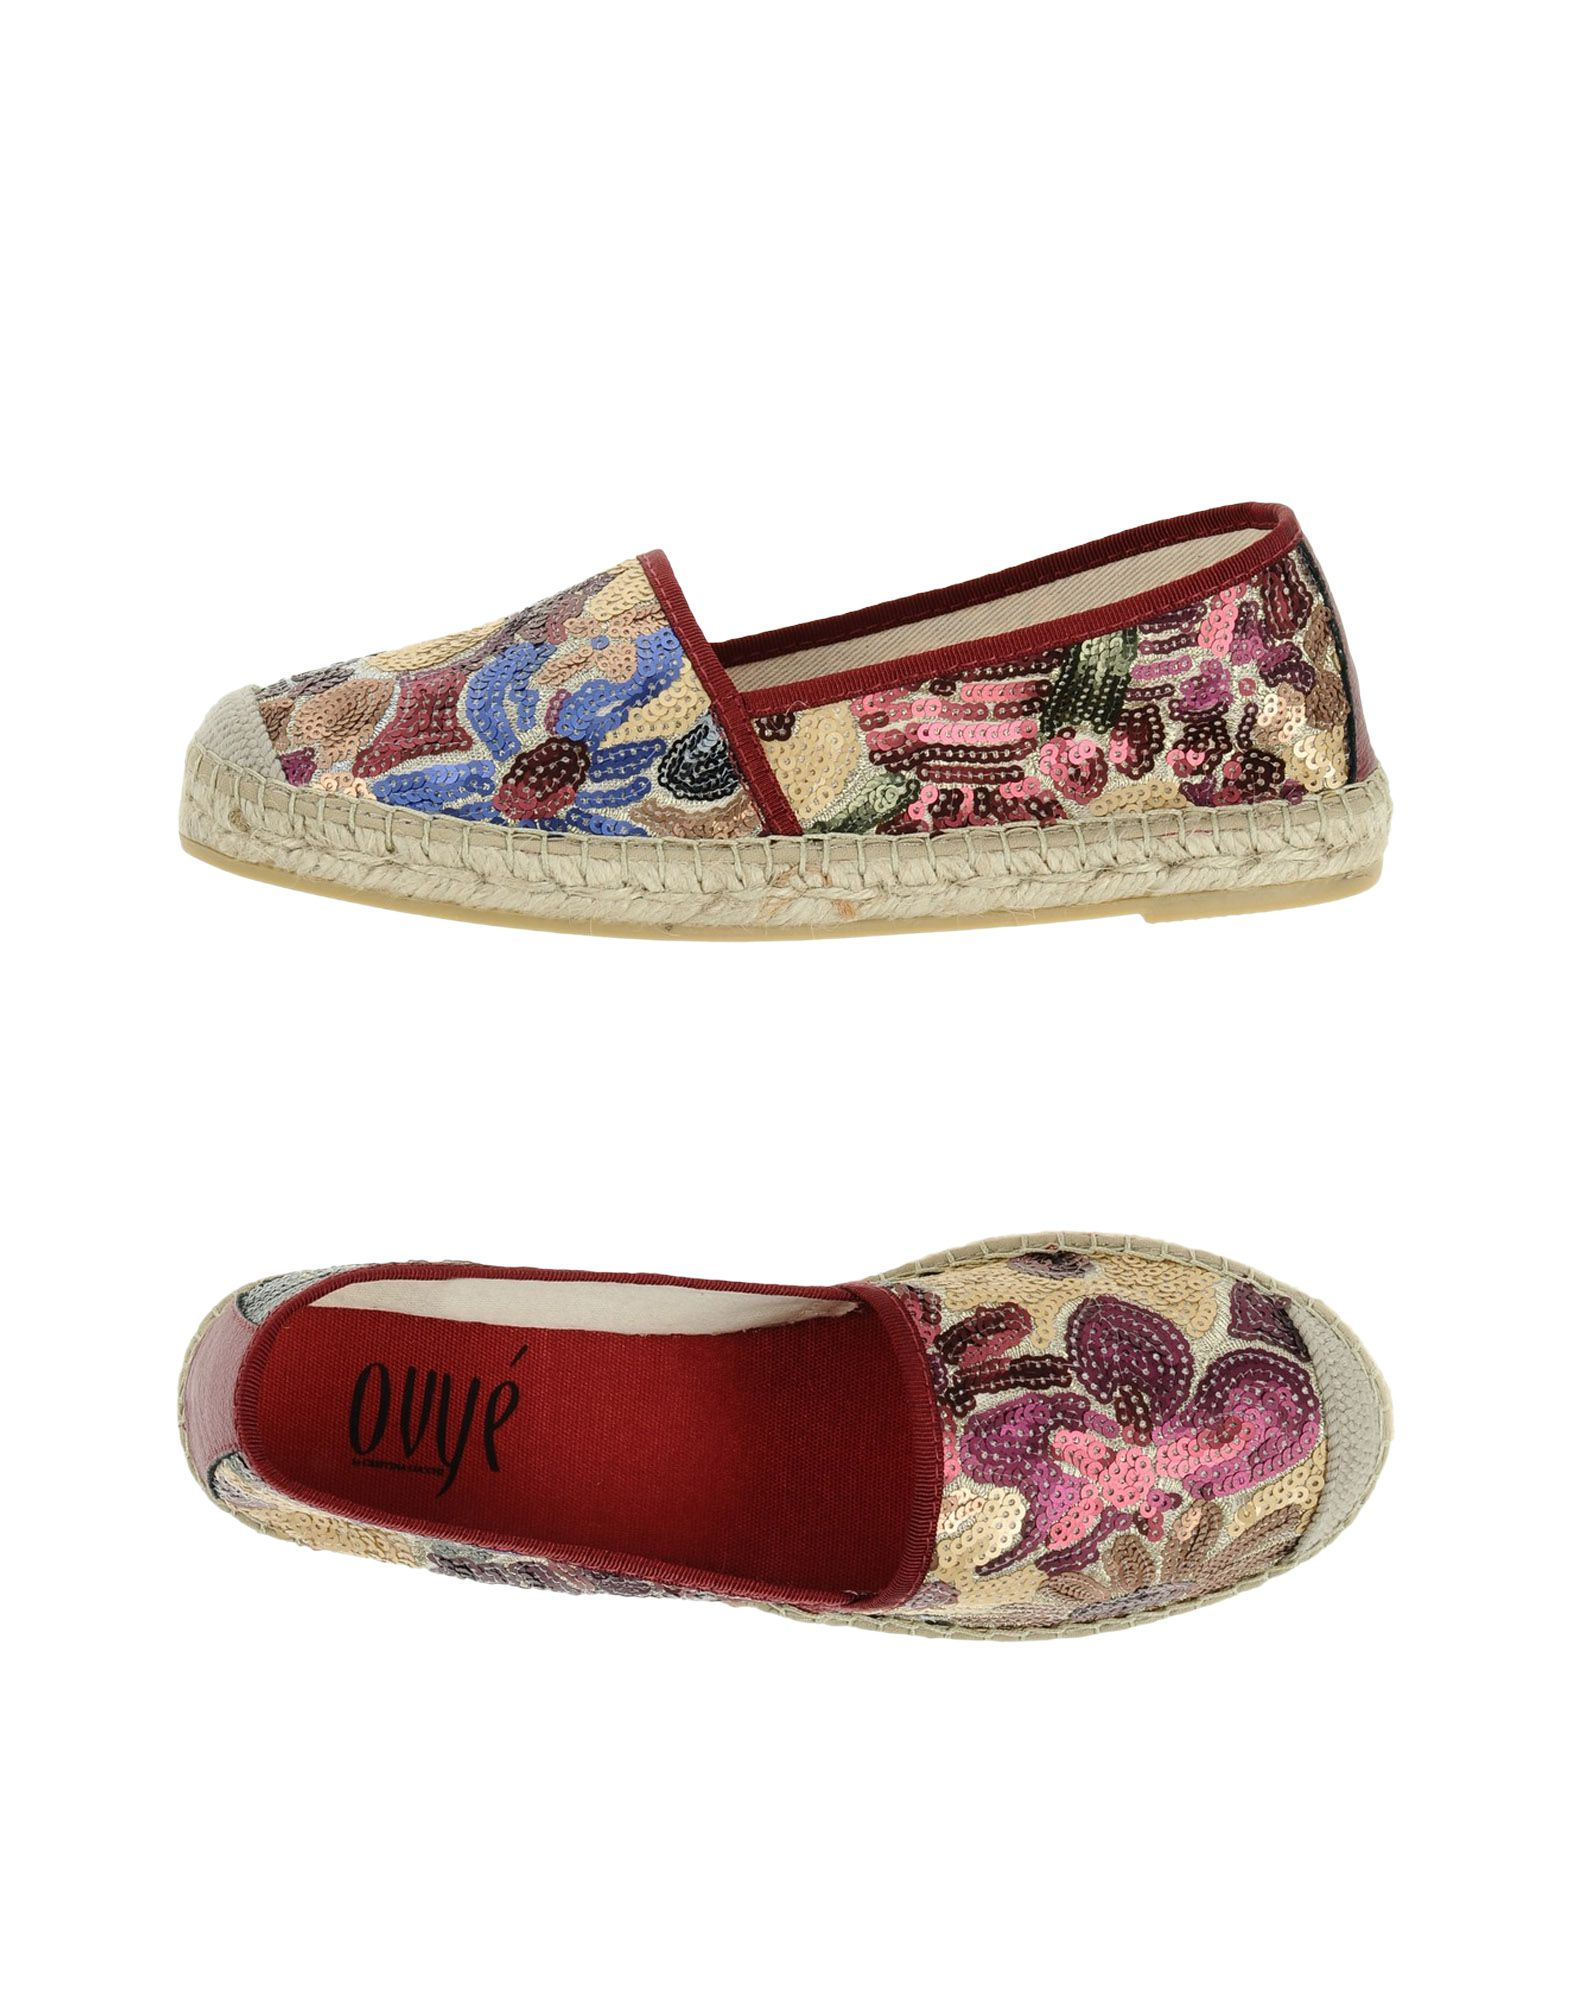 Espadrilles Ovye By Cristina Lucchi Femme - Espadrilles Ovye By Cristina Lucchi sur